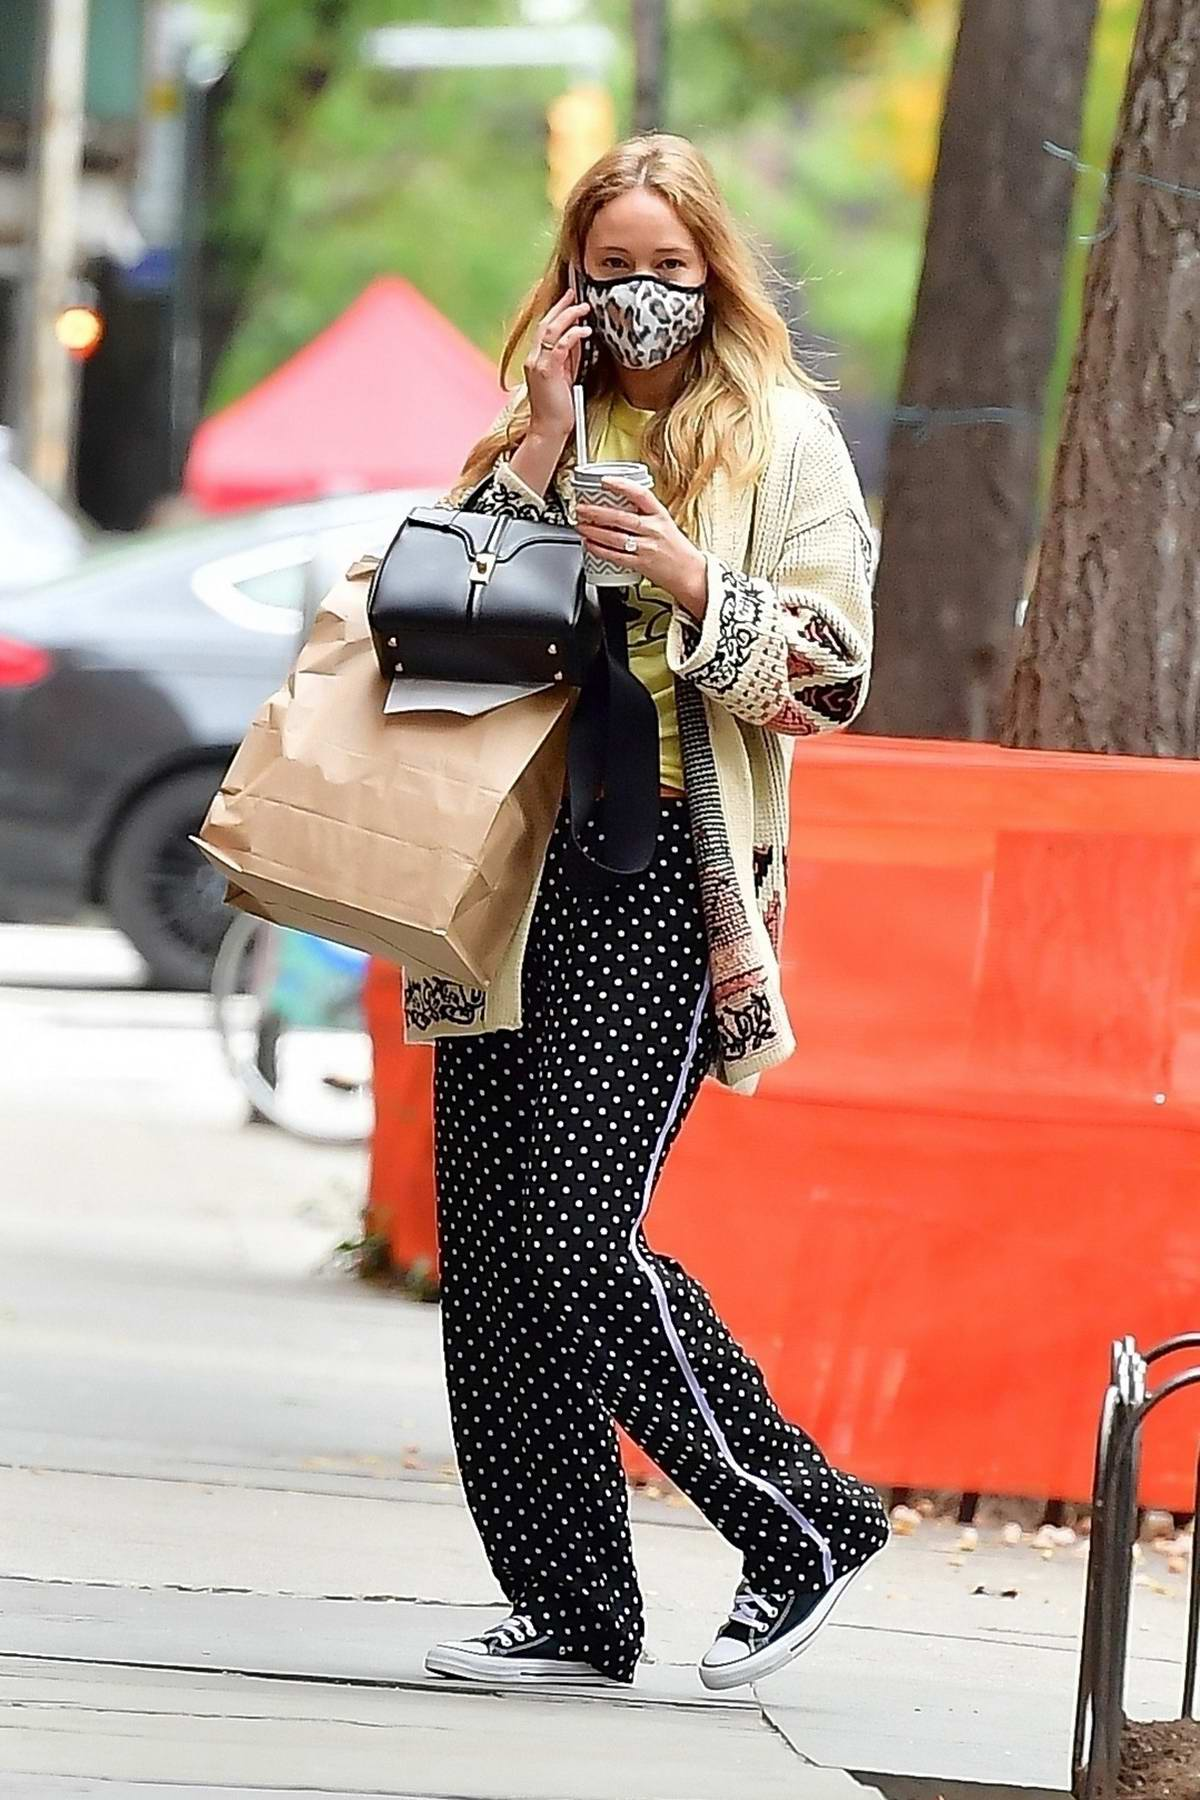 Jennifer Lawrence steps out displaying her funky style to meet friends for lunch in New York City